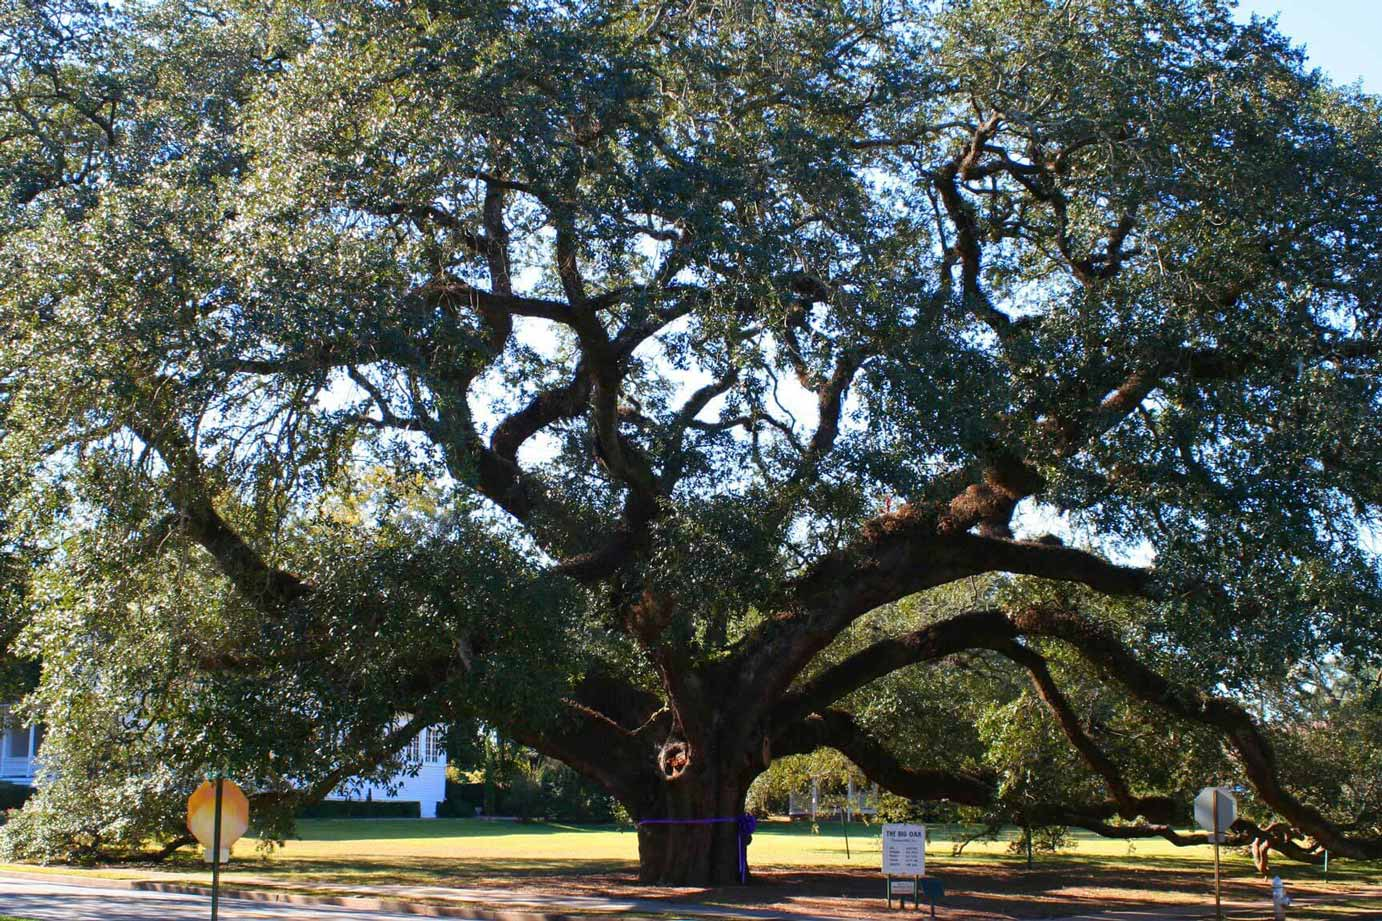 Visit the Big Oak Tree - Over 300 Years Old!